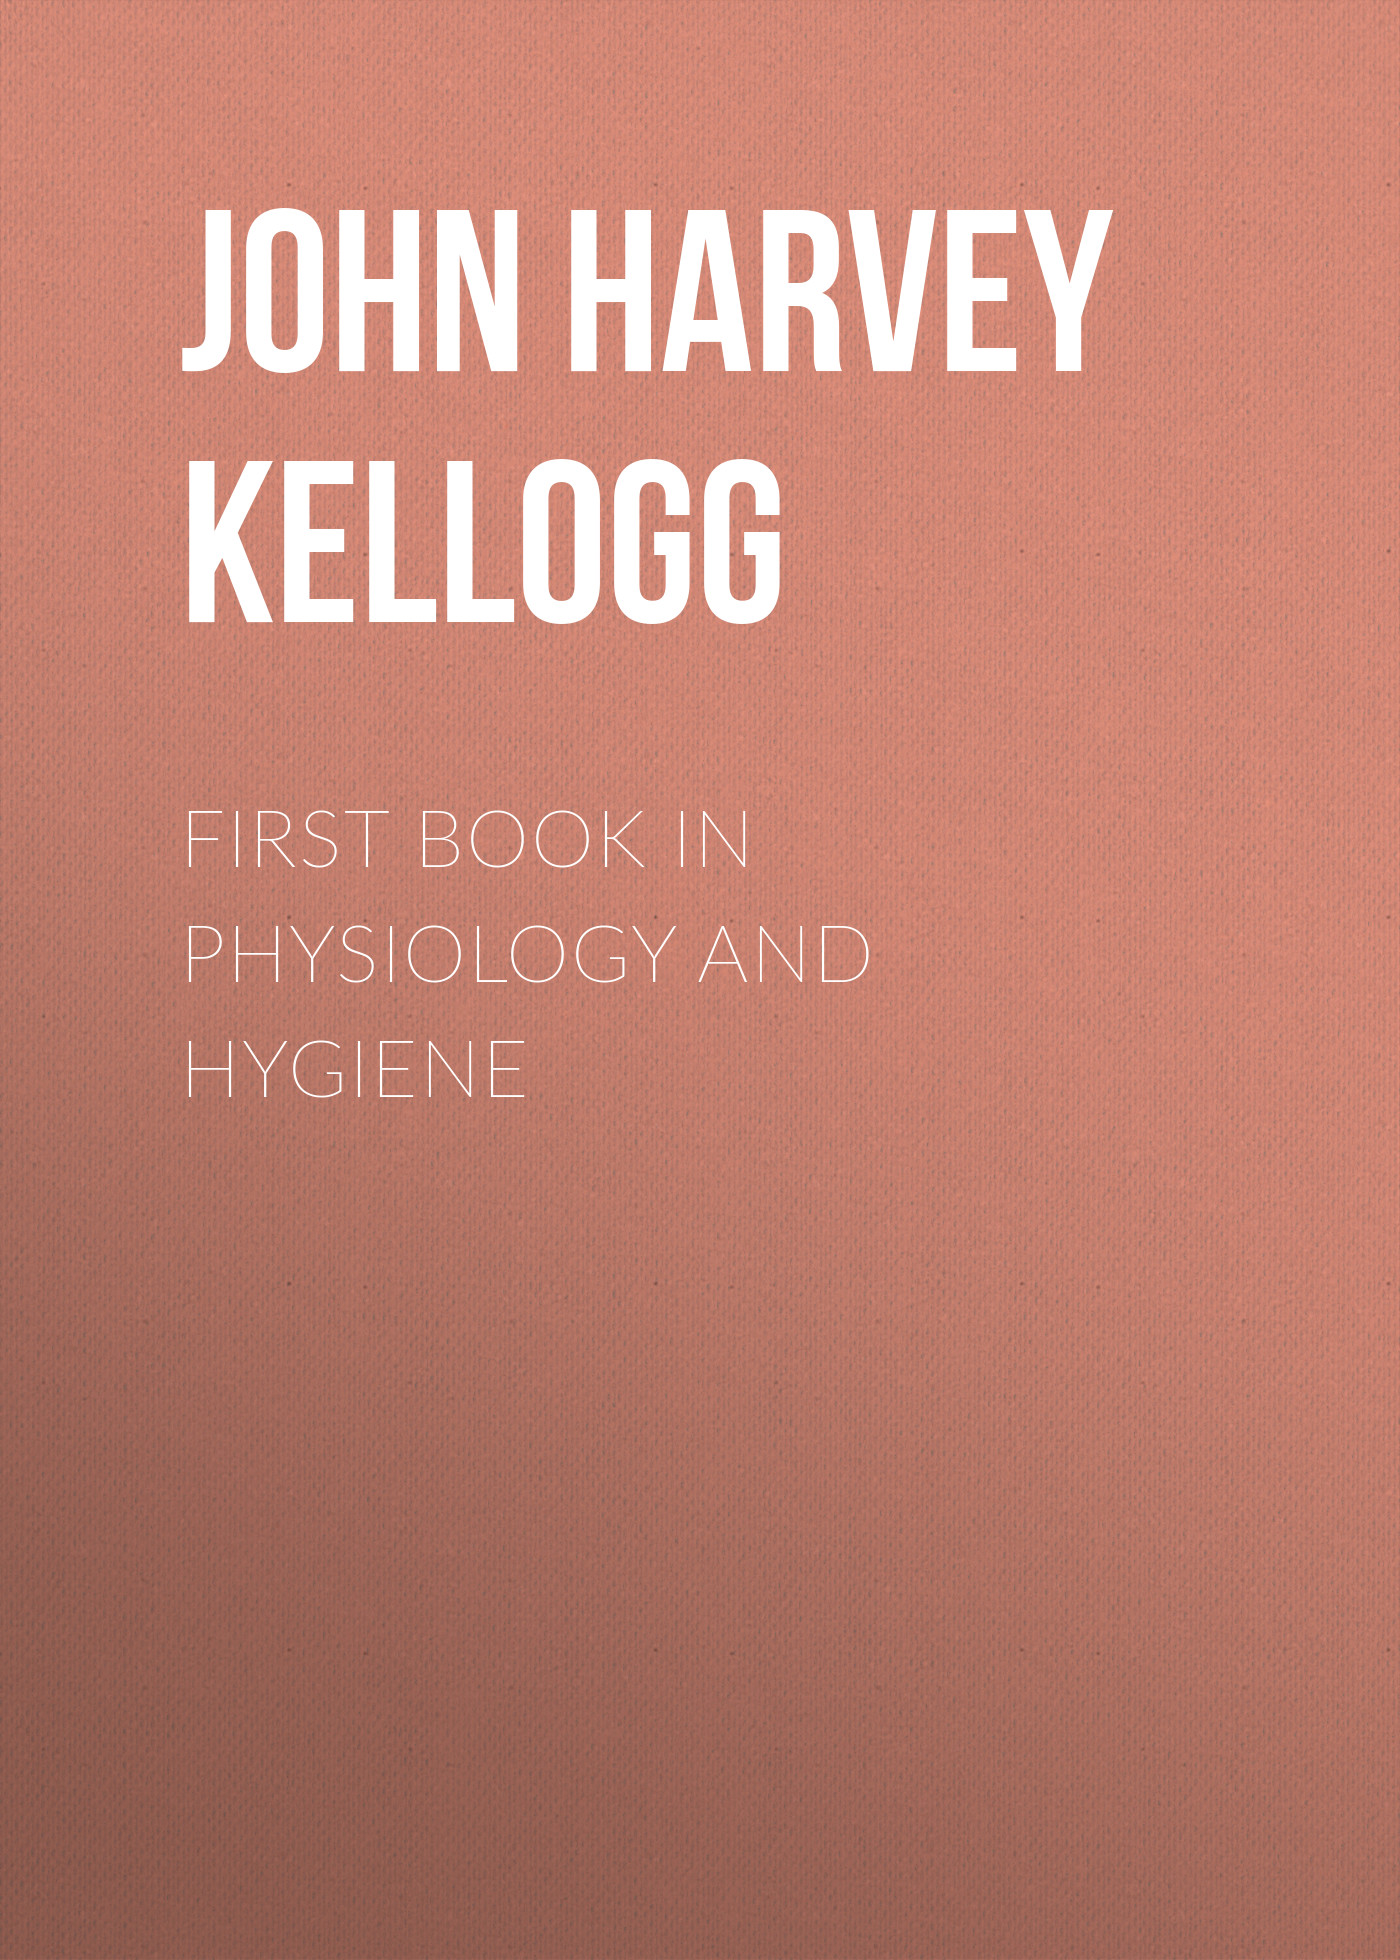 John Harvey Kellogg First Book in Physiology and Hygiene футболка wearcraft premium slim fit printio тасманский дьявол